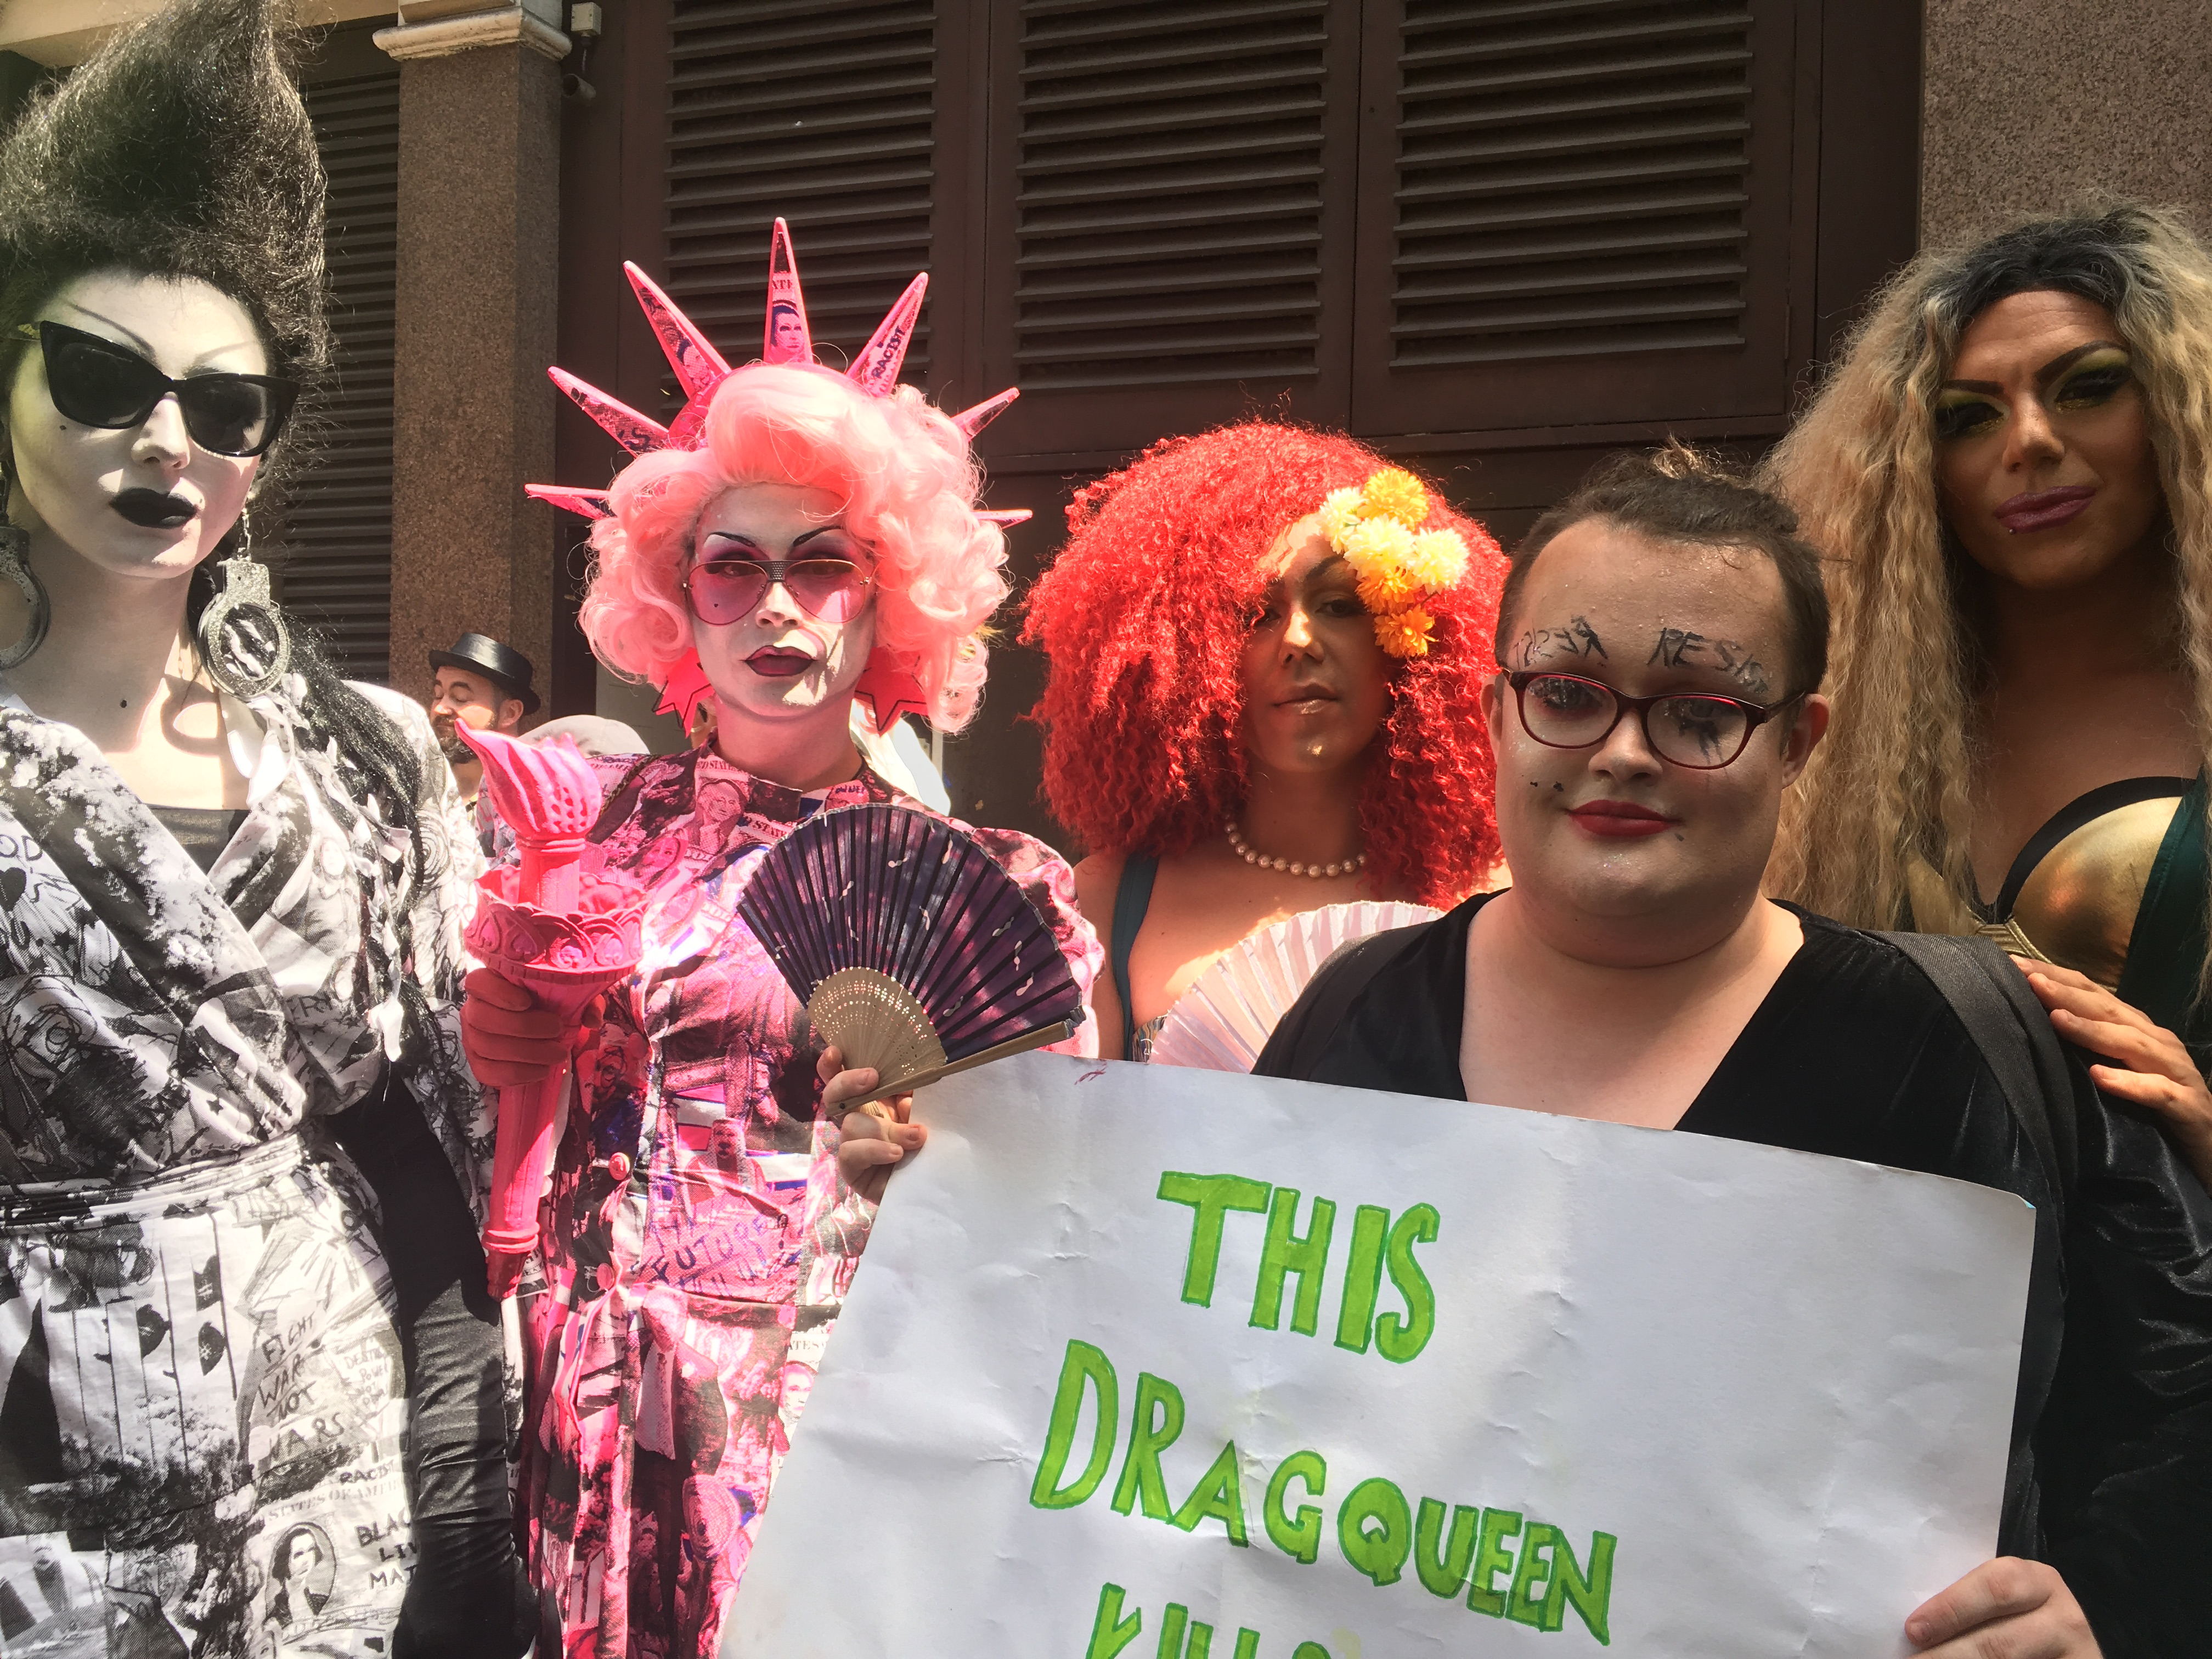 Drag queens, including Liquorice Black (far left), Maryanne Misandry (front centre) and Very Berry (far right), gather to protest Trump's visit in Soho, central London on July 13.